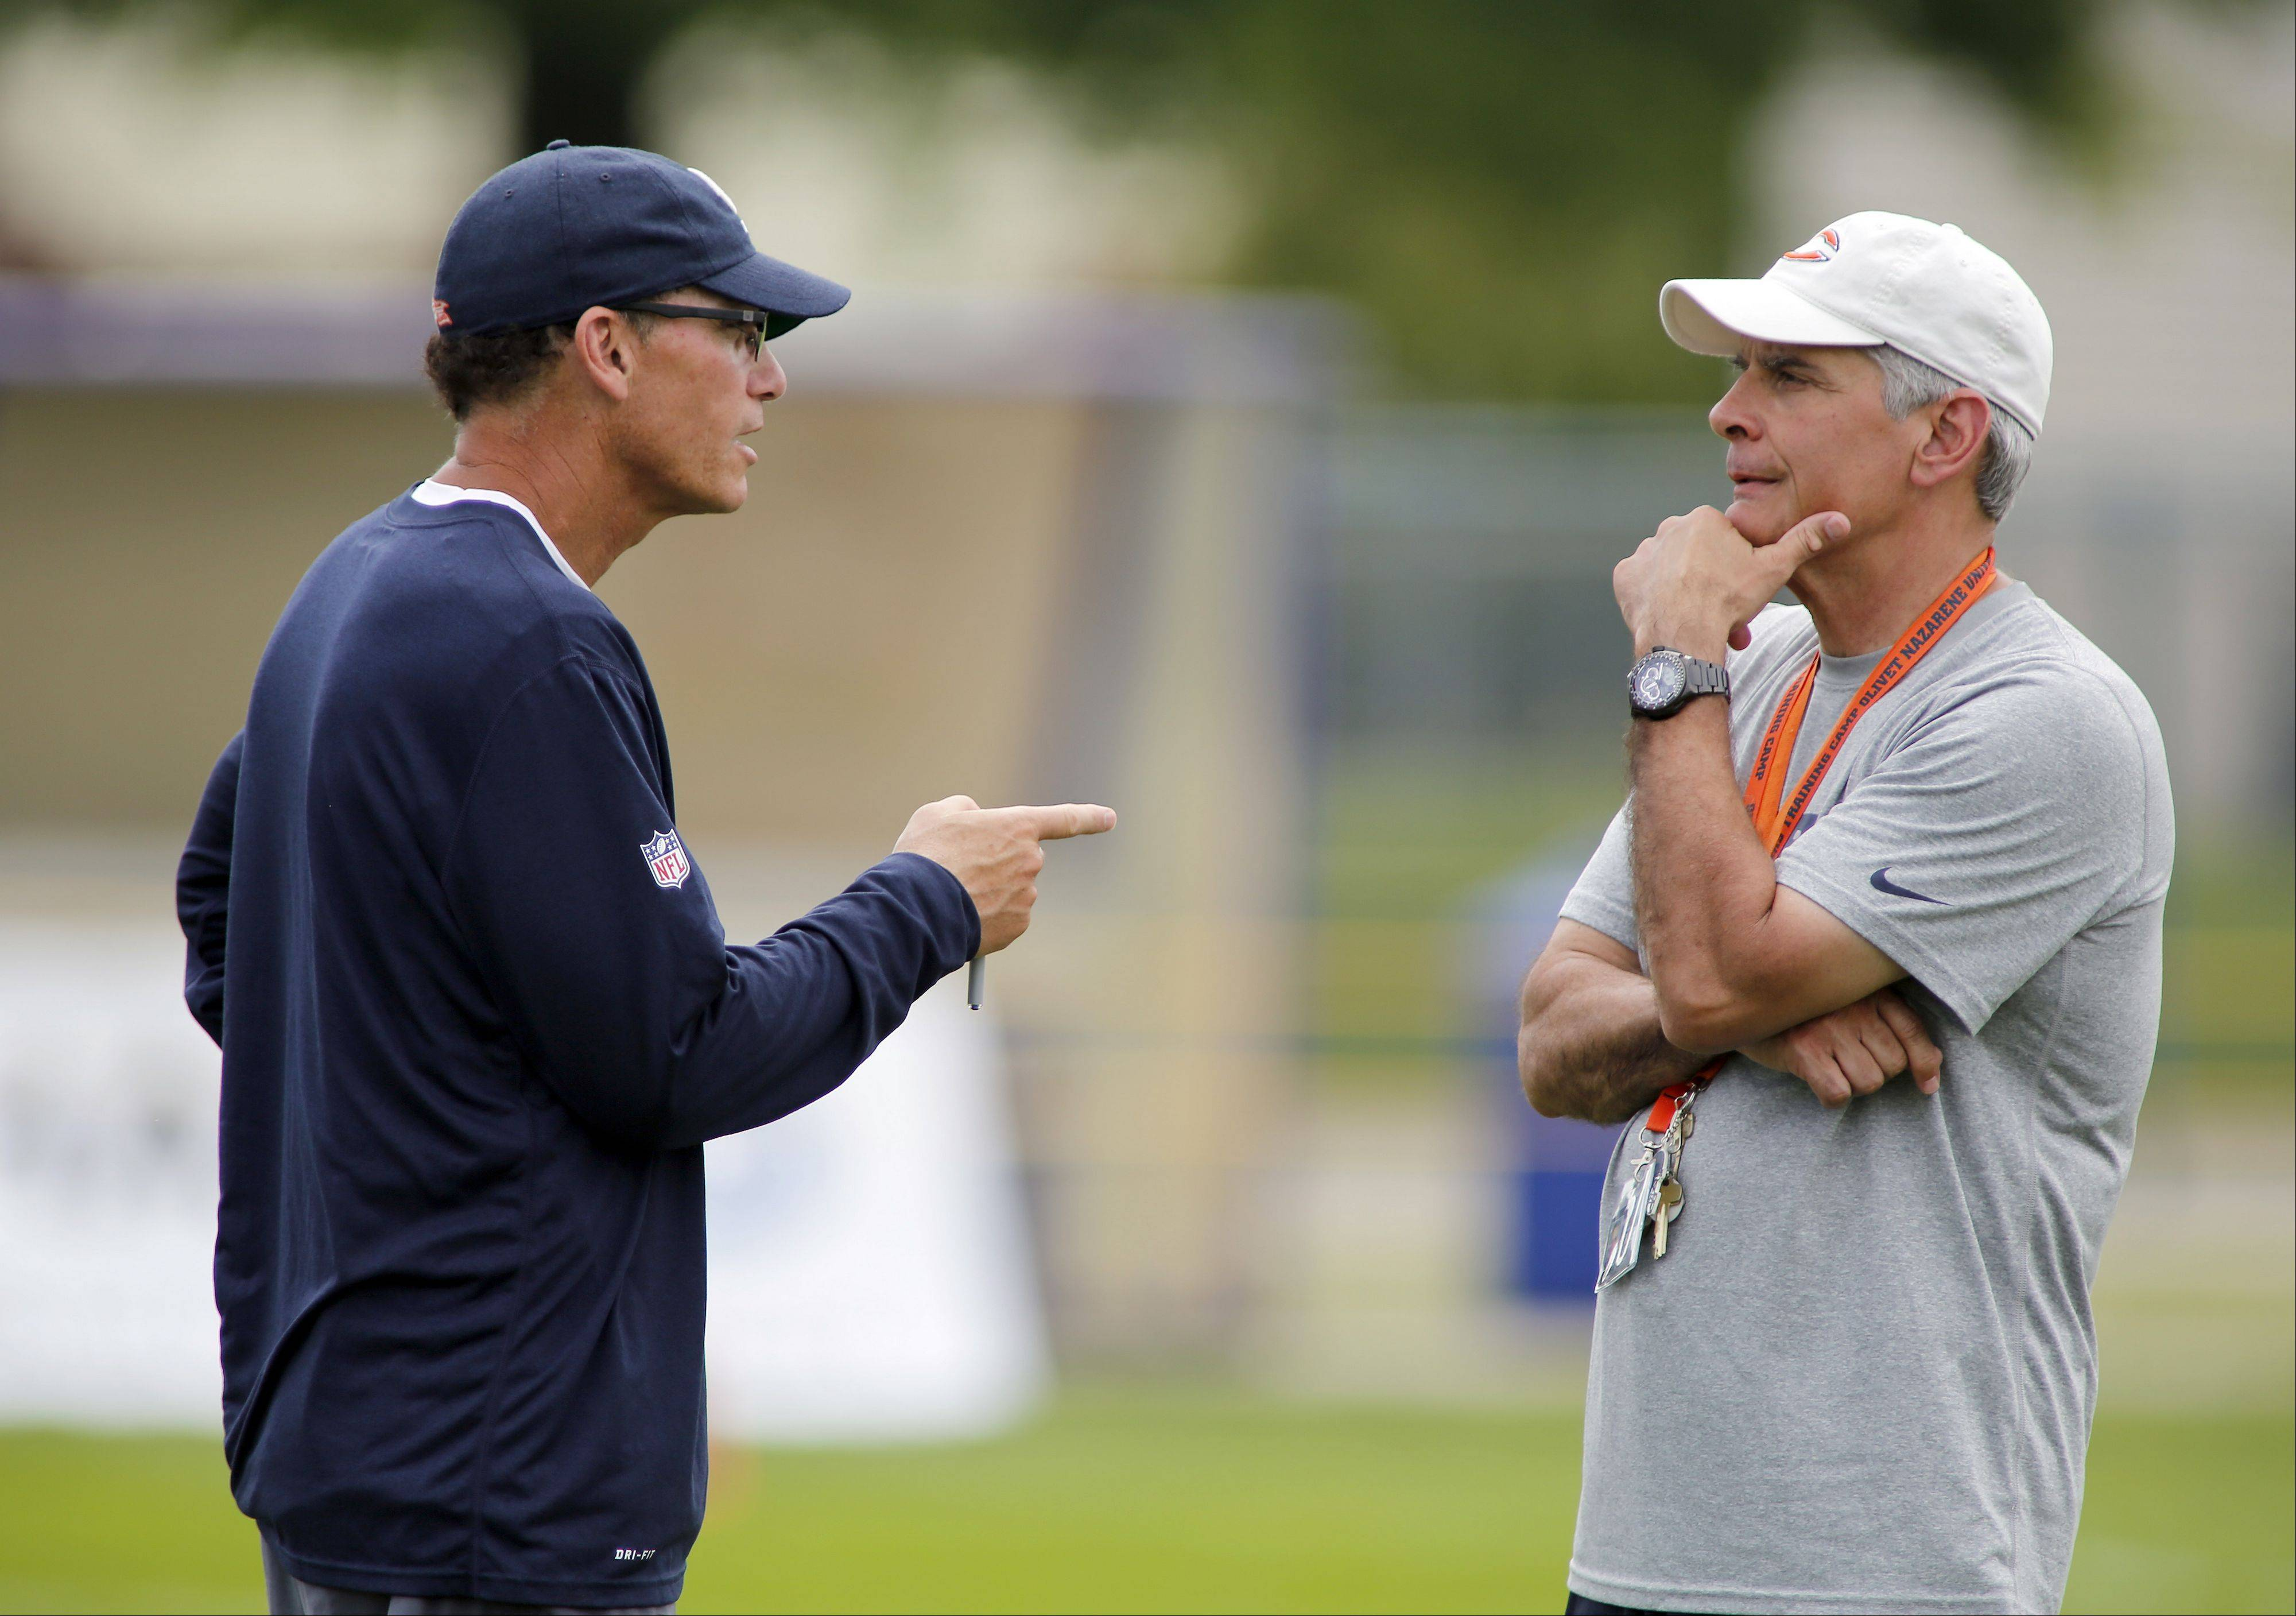 Bears coach Marc Trestman talks to general manager Phill Emery during training camp on the campus of Olivet Nazarene University in Bourbonnais.